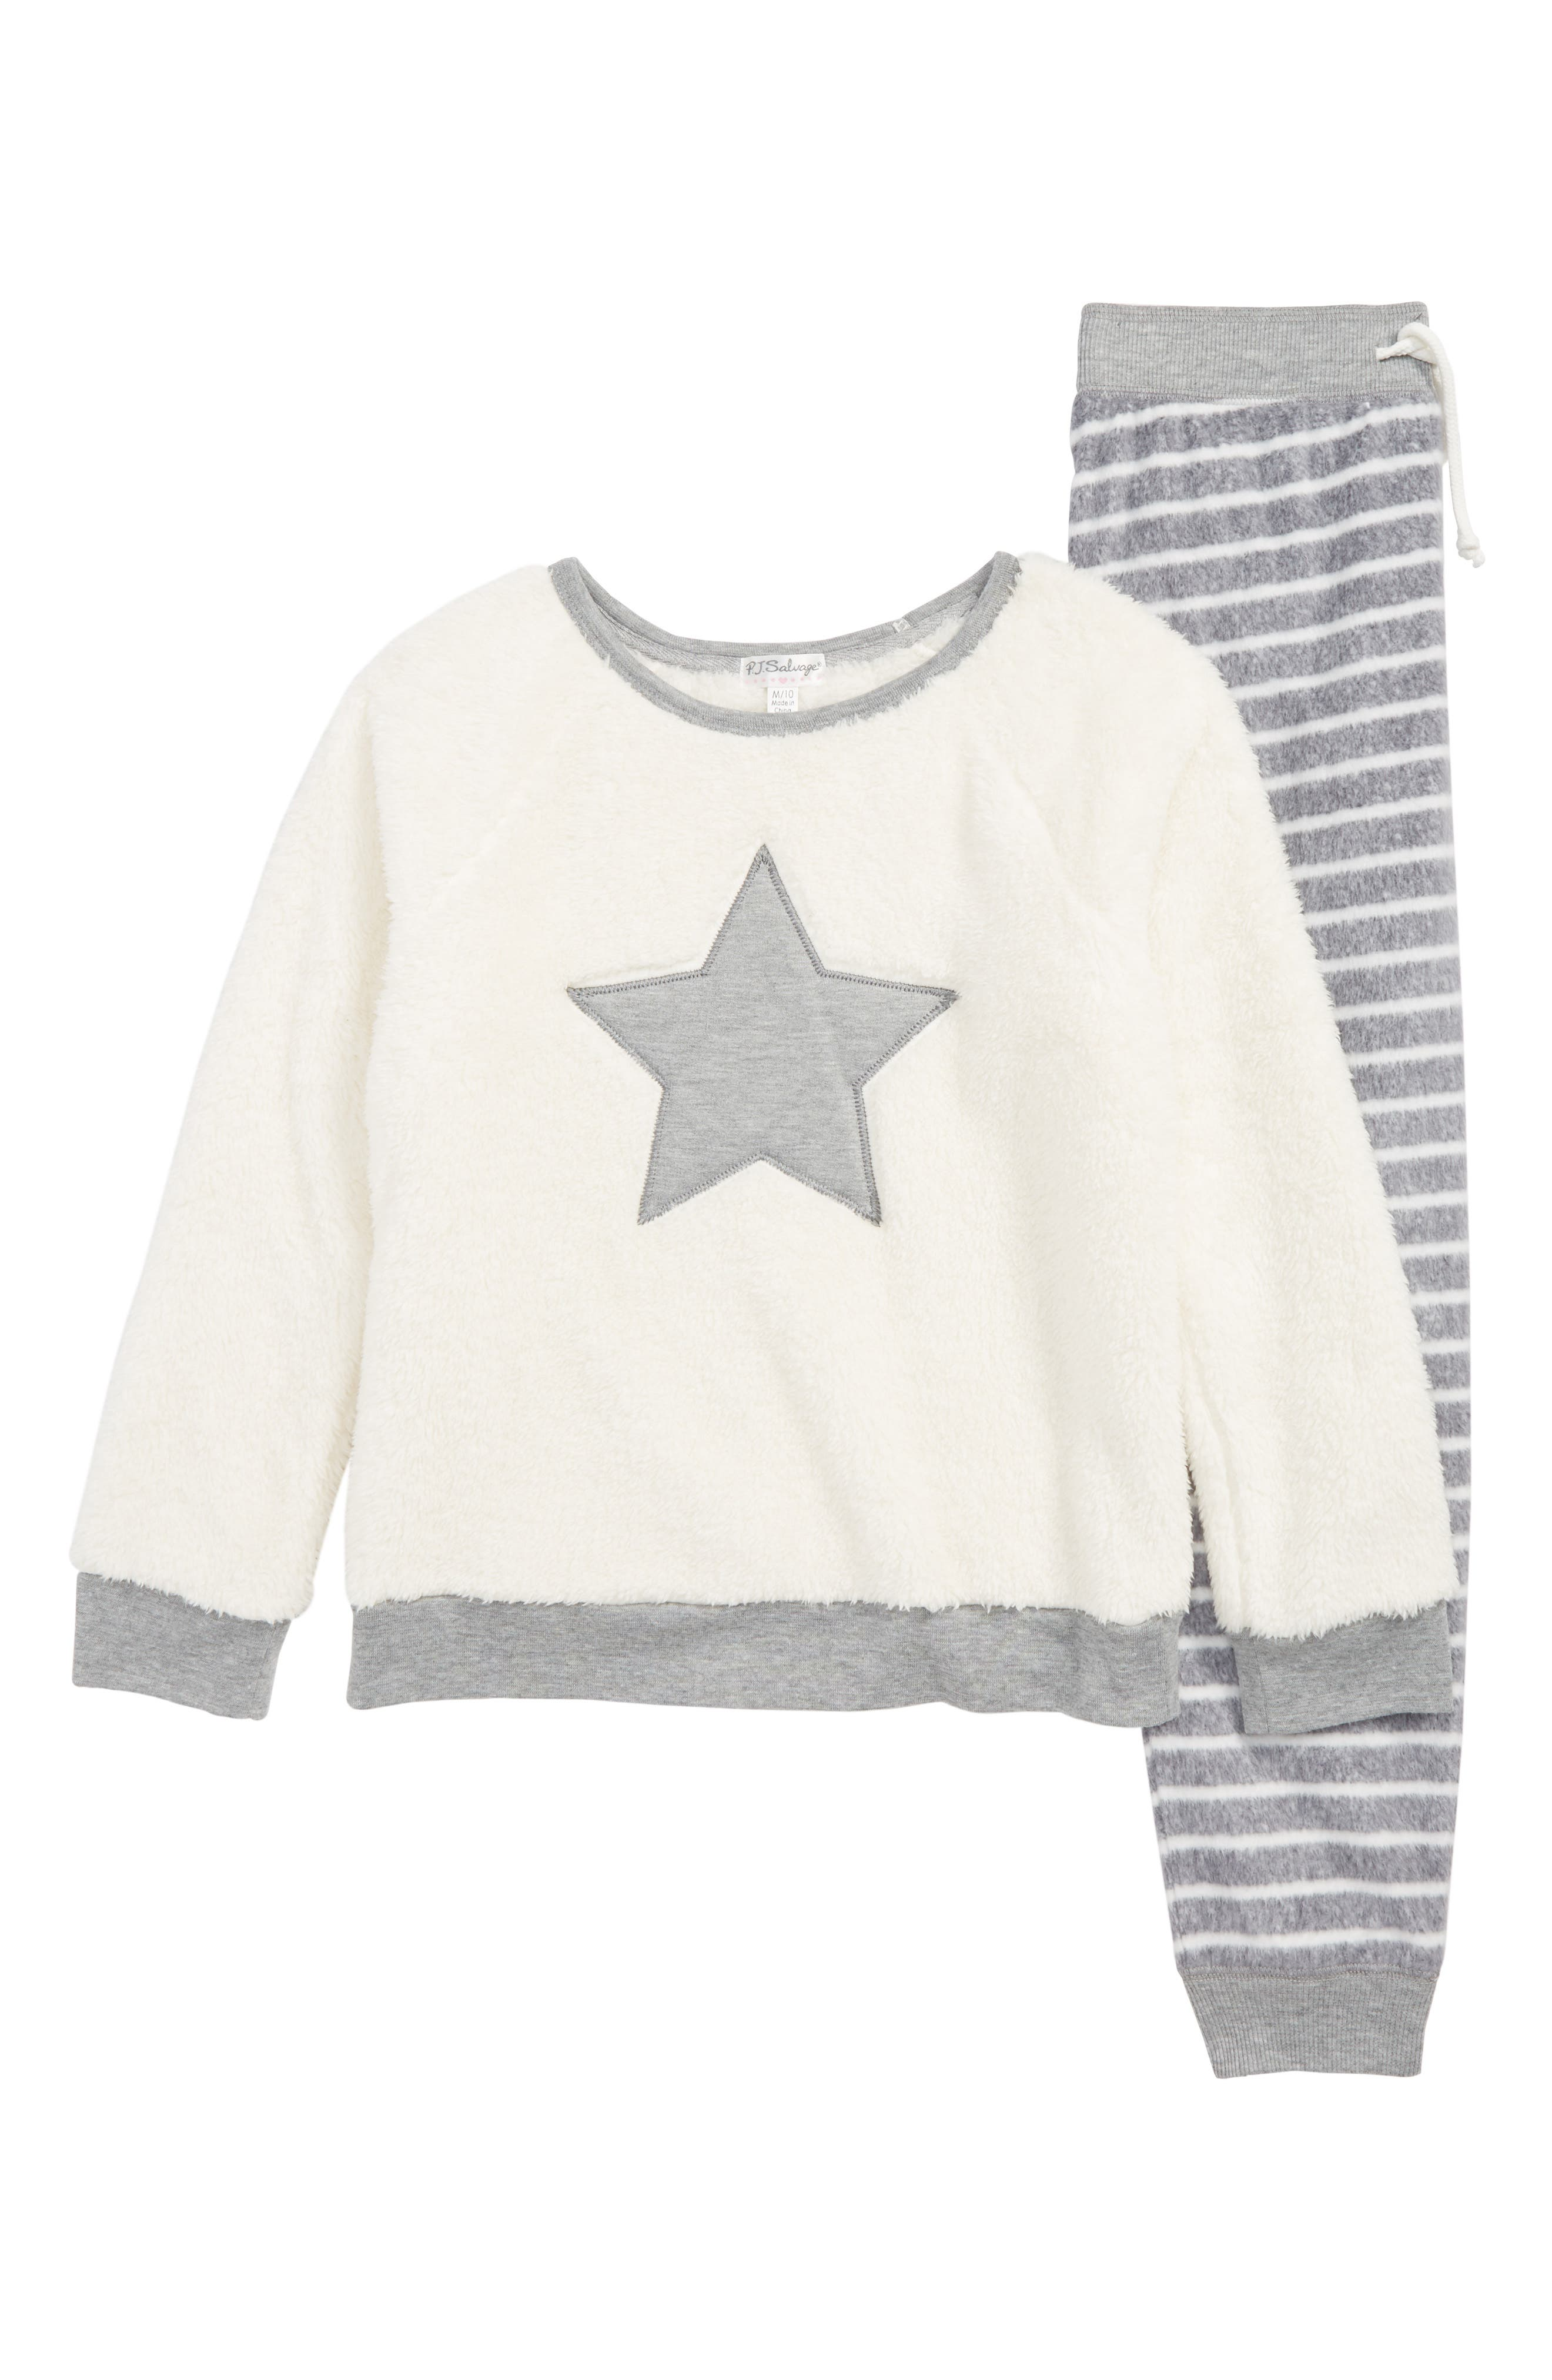 Starry Night Fitted Two-Piece Pajamas,                             Main thumbnail 1, color,                             HEATHER GREY